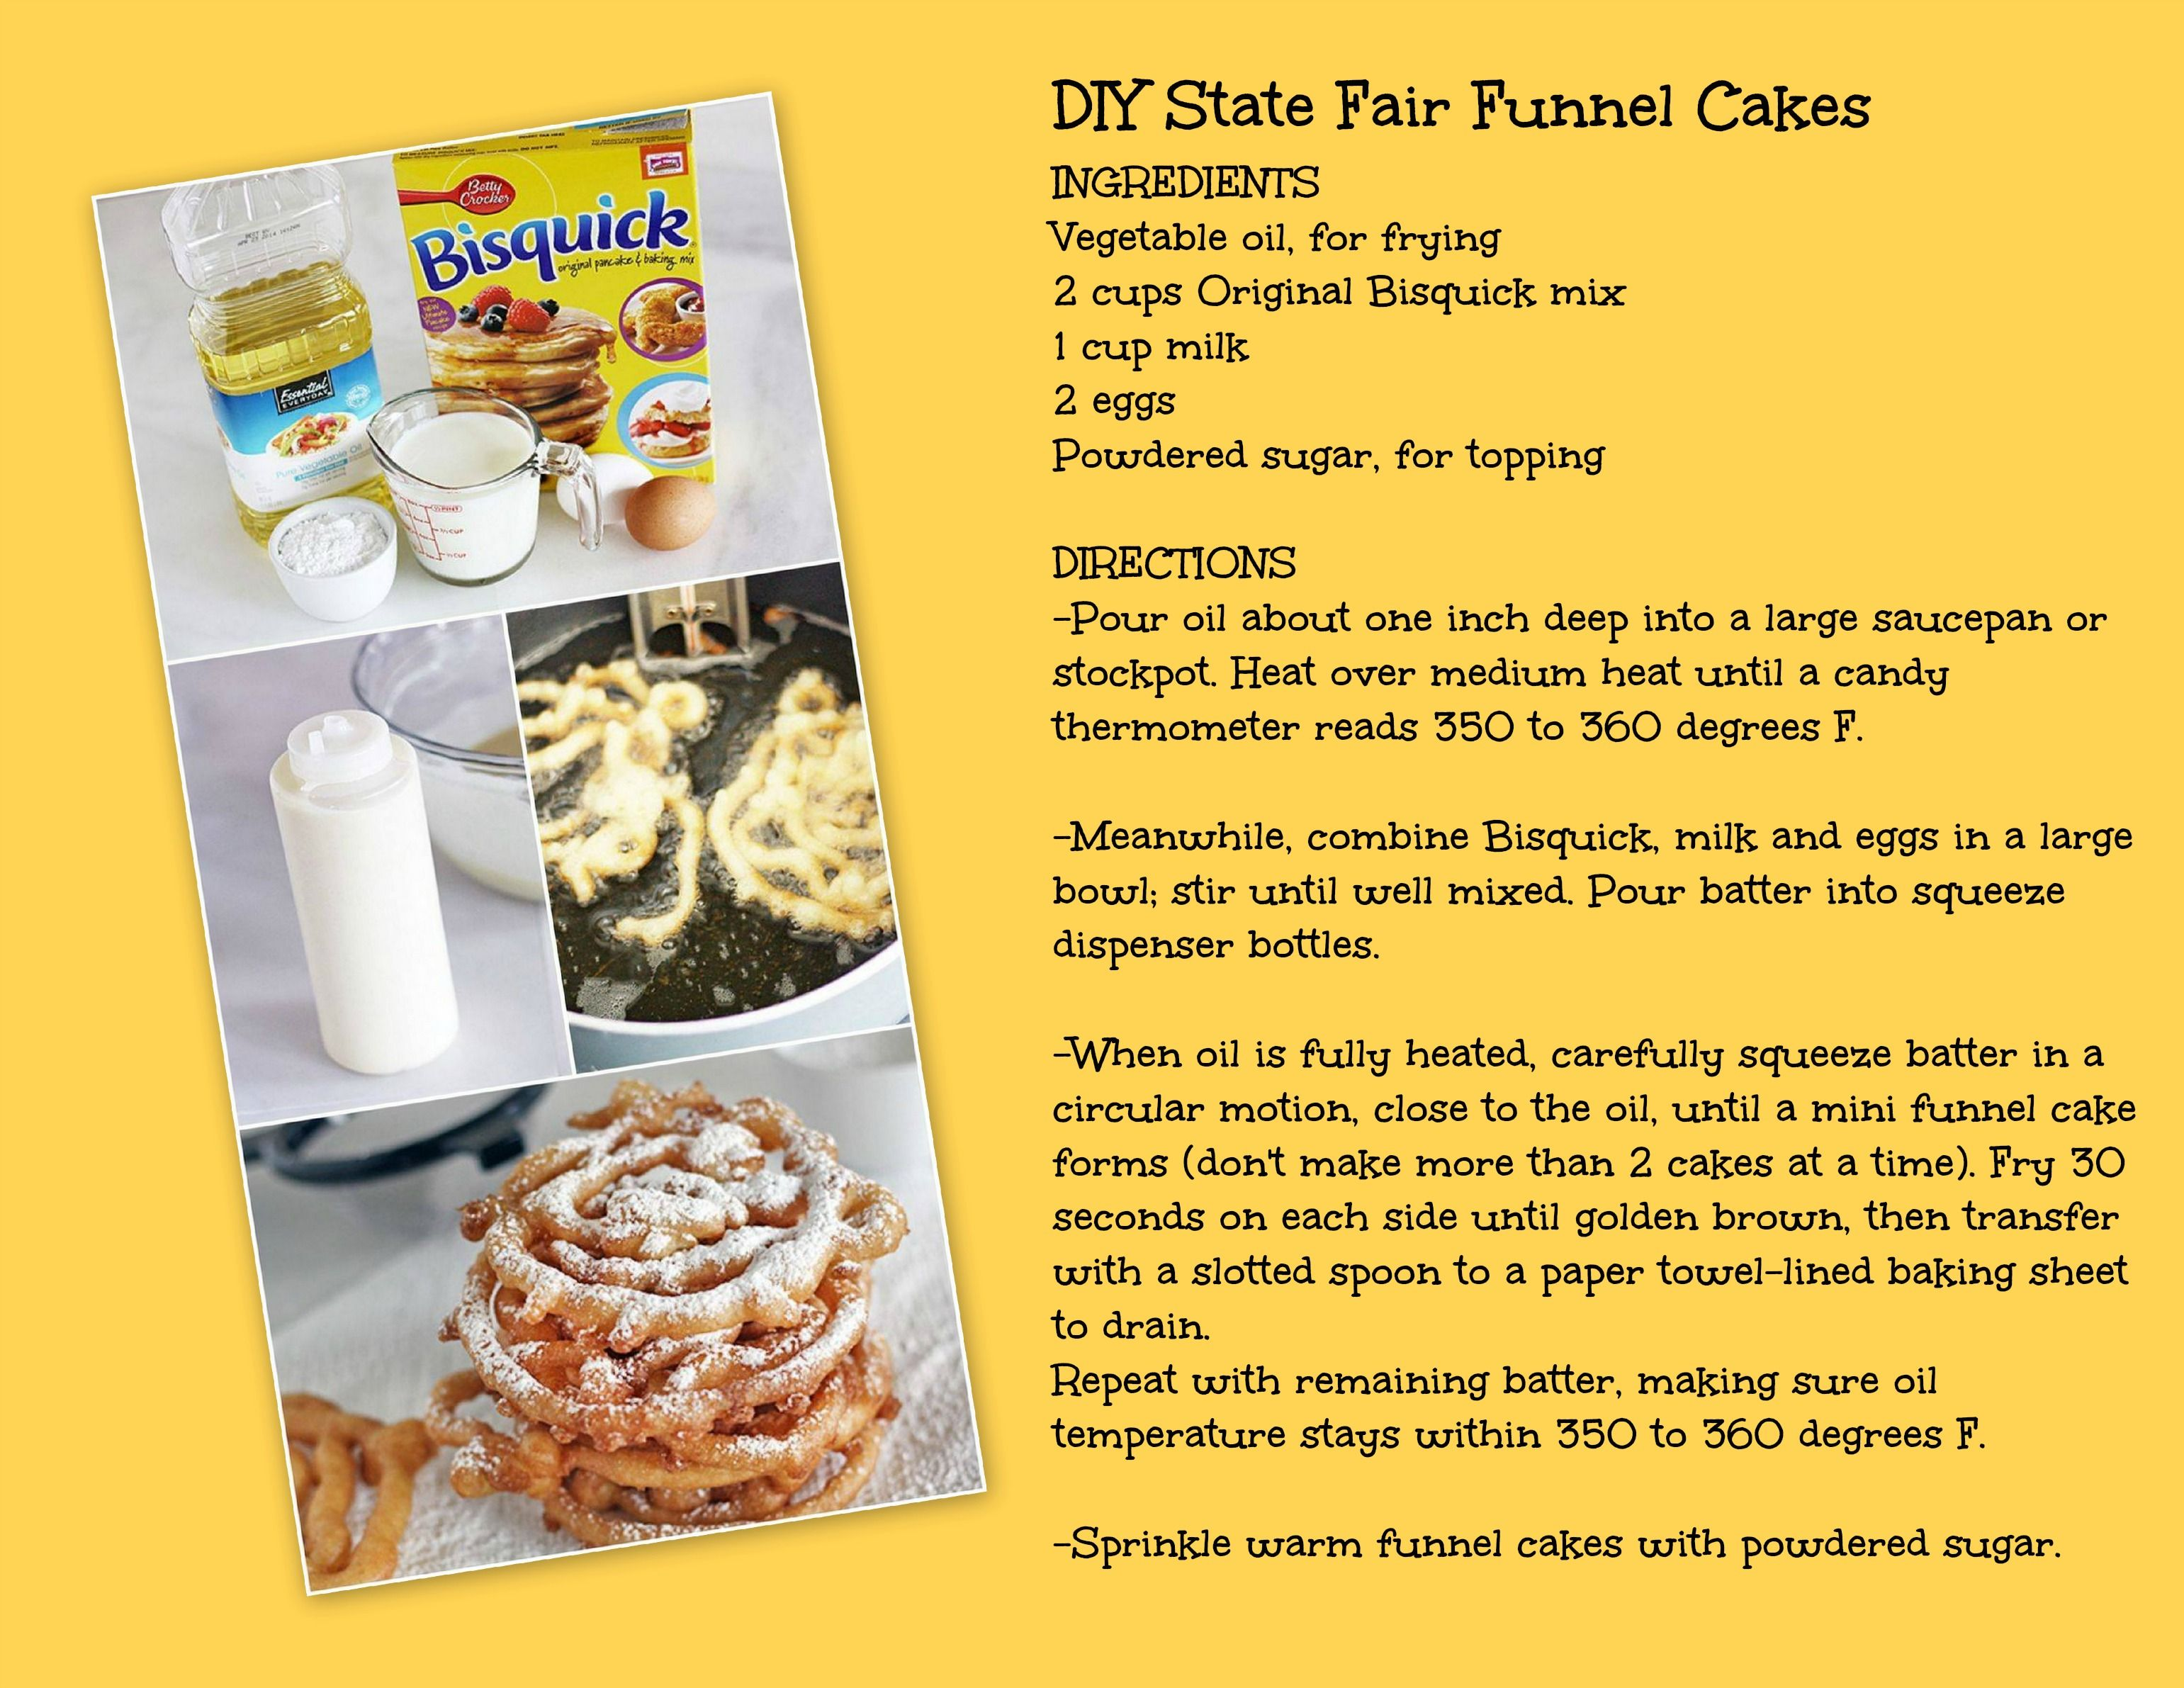 Easy funnel cakes use gf bisquick for gluten free